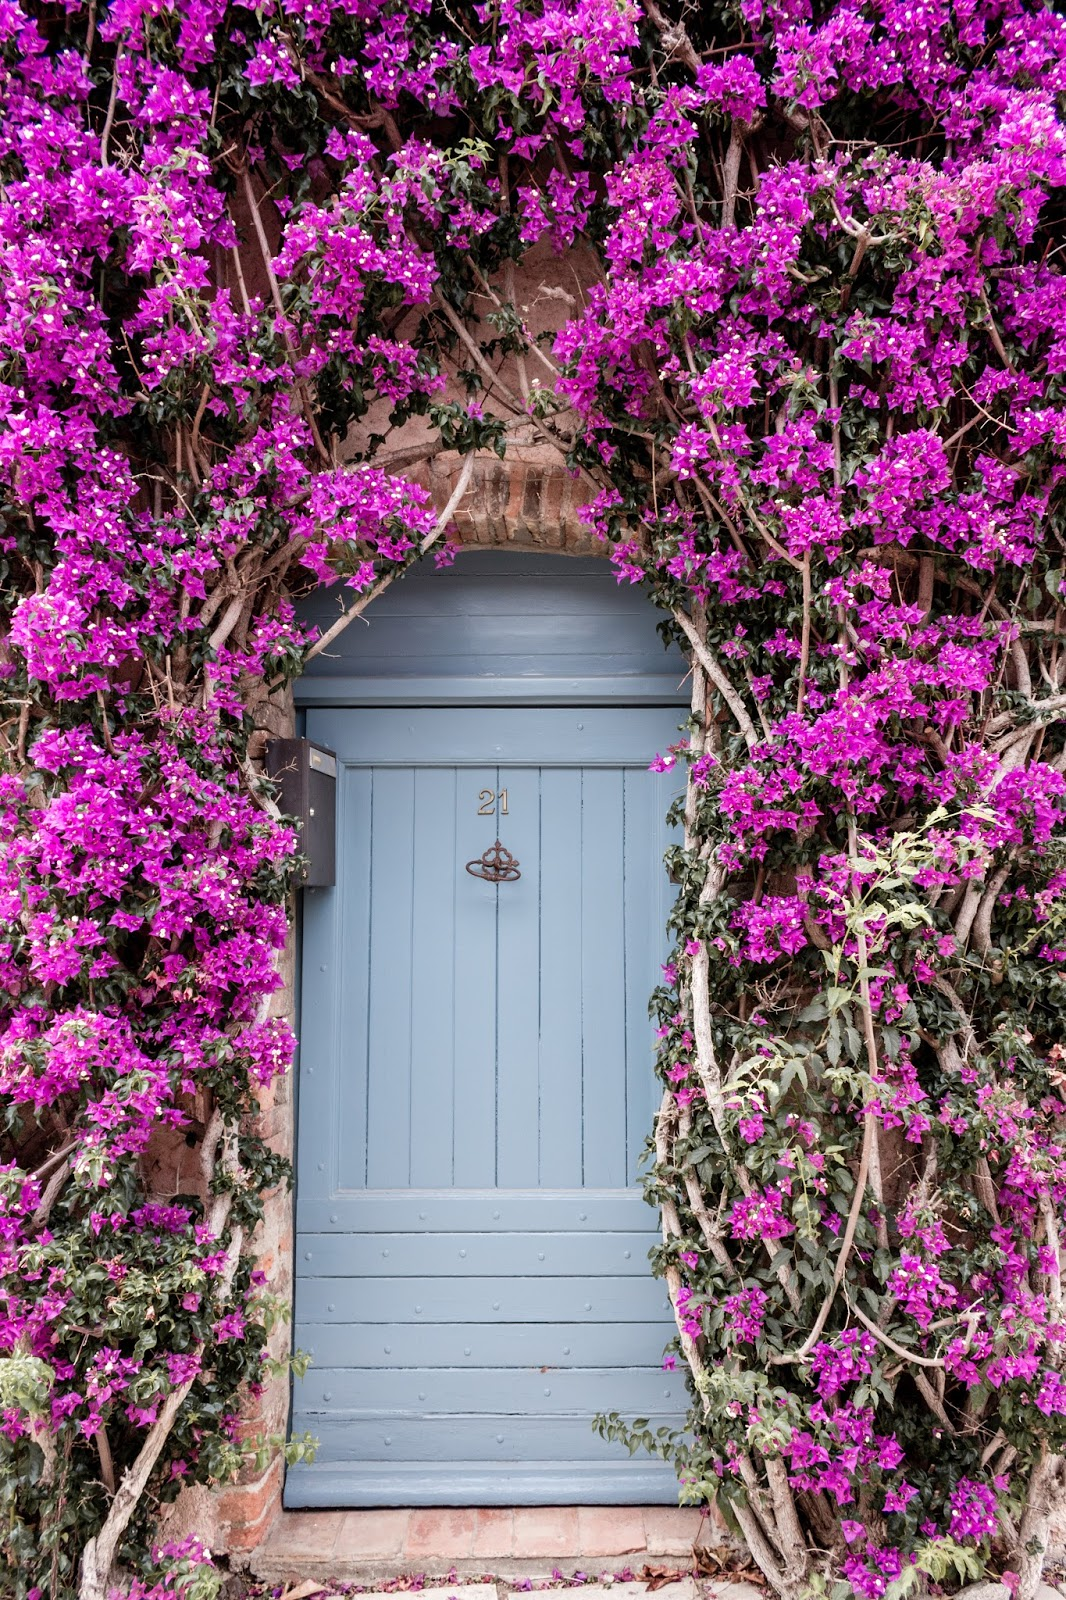 French country front door with blue and bright pink climbing vines and flowers.